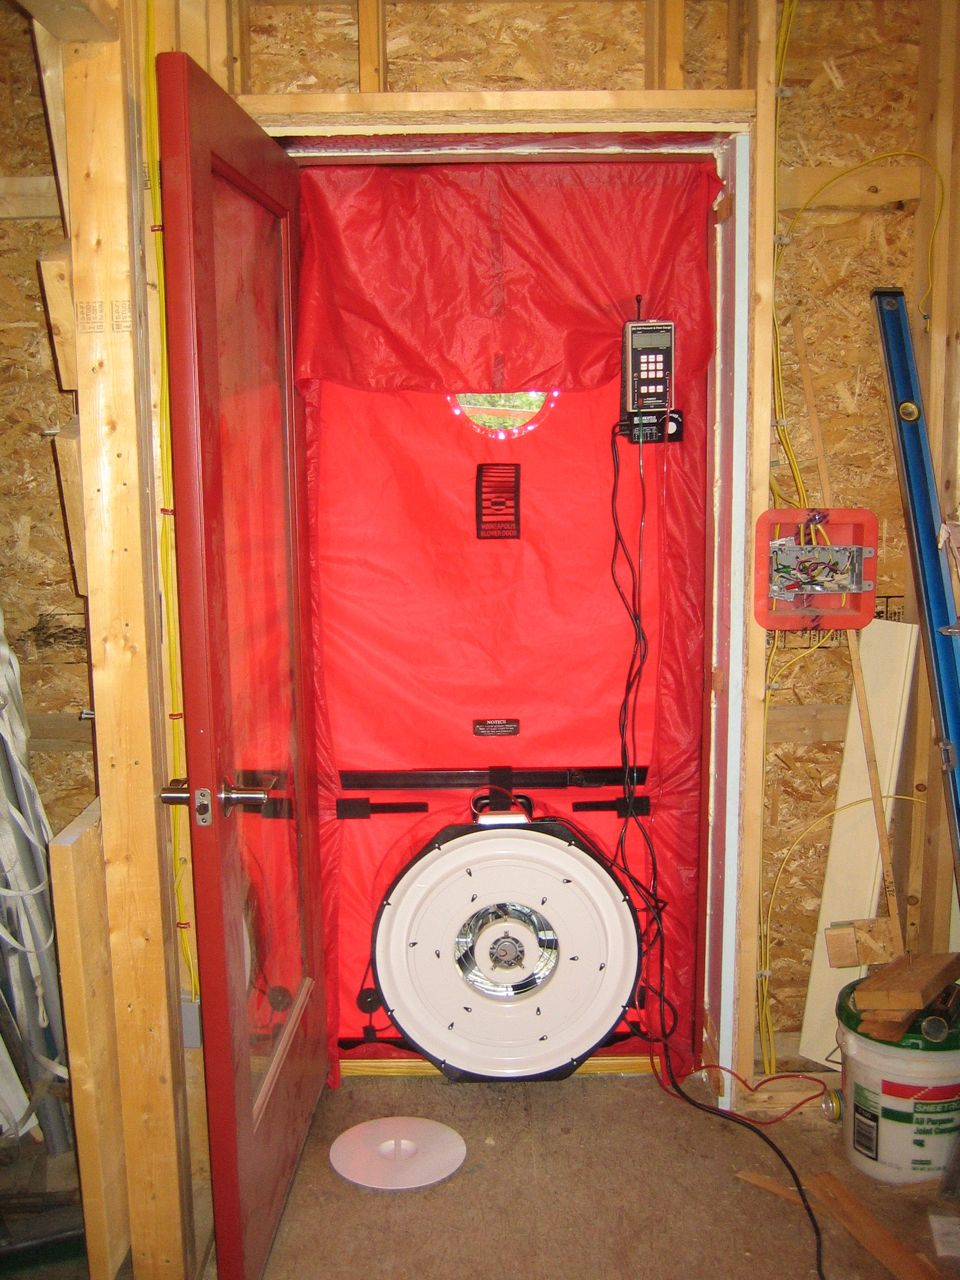 shell blower door test results up hill house. Black Bedroom Furniture Sets. Home Design Ideas